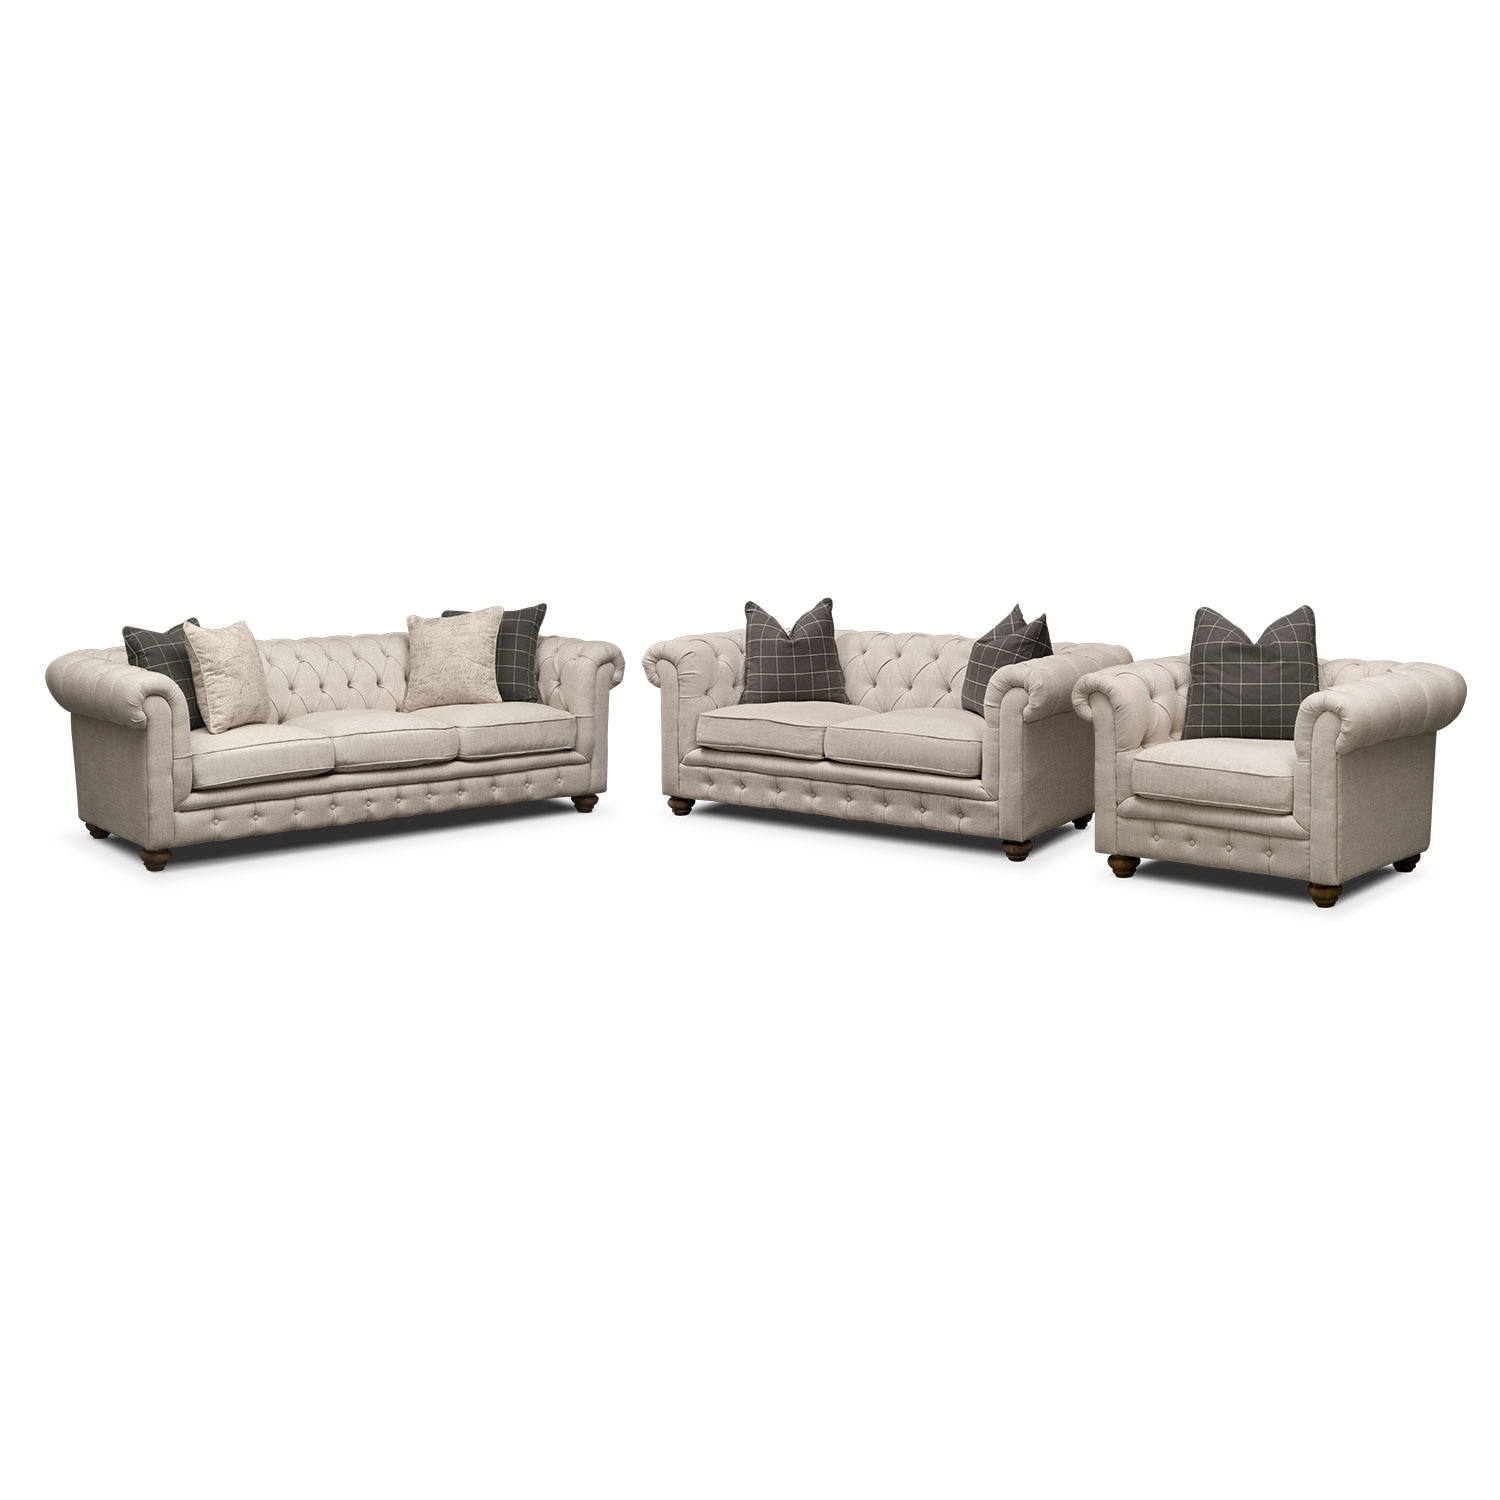 Living Room Furniture - Madeline Sofa, Apartment Sofa and Chair Set - Beige